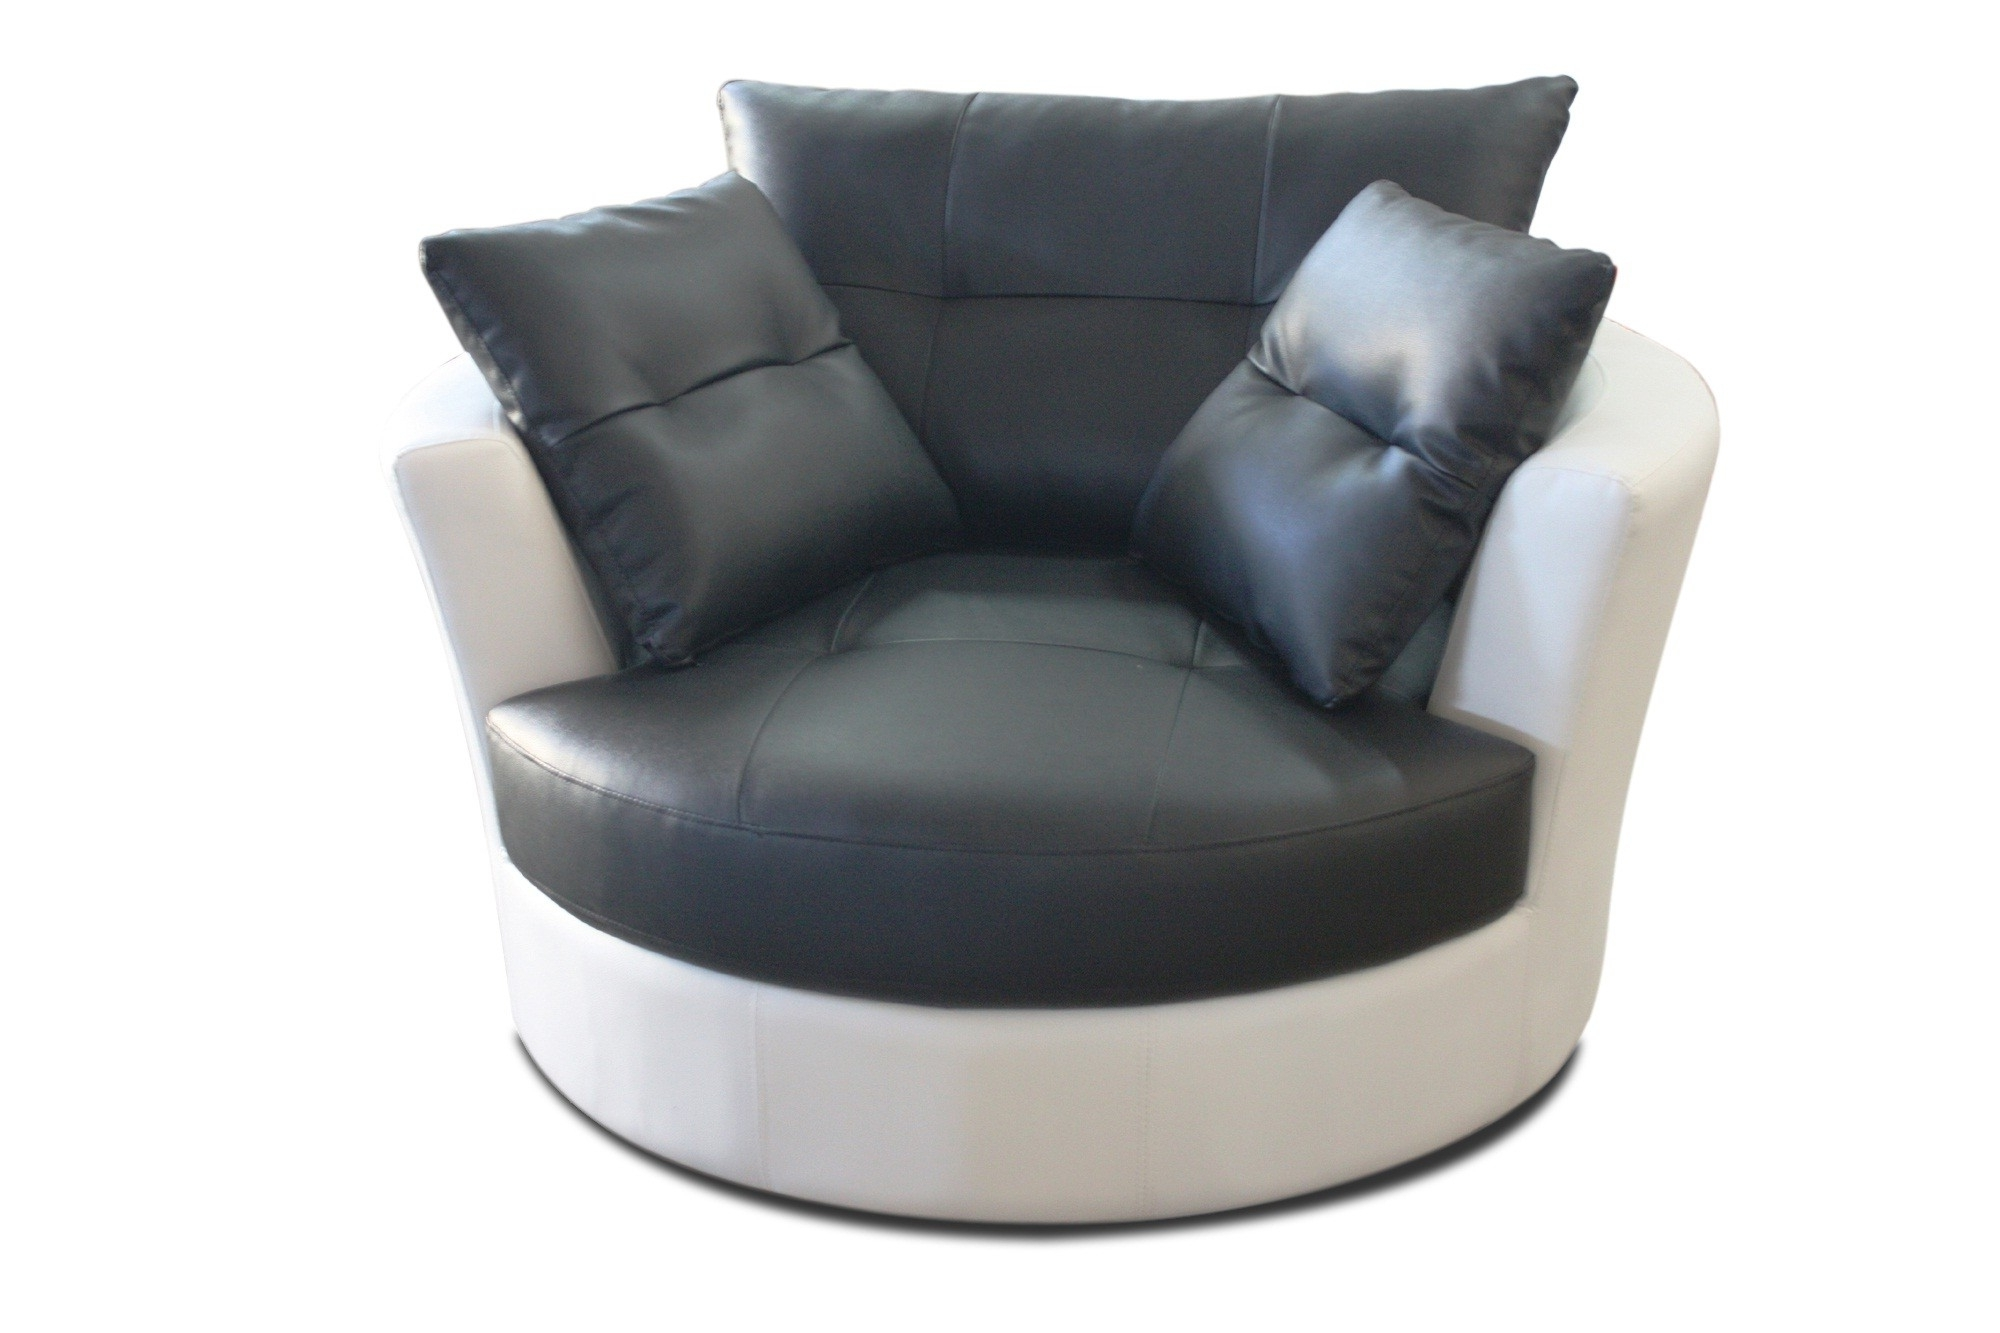 Most Current Fresh Swivel Sofa Chair 55 For Sofas And Couches Ideas With Swivel Pertaining To Round Swivel Sofa Chairs (View 6 of 15)